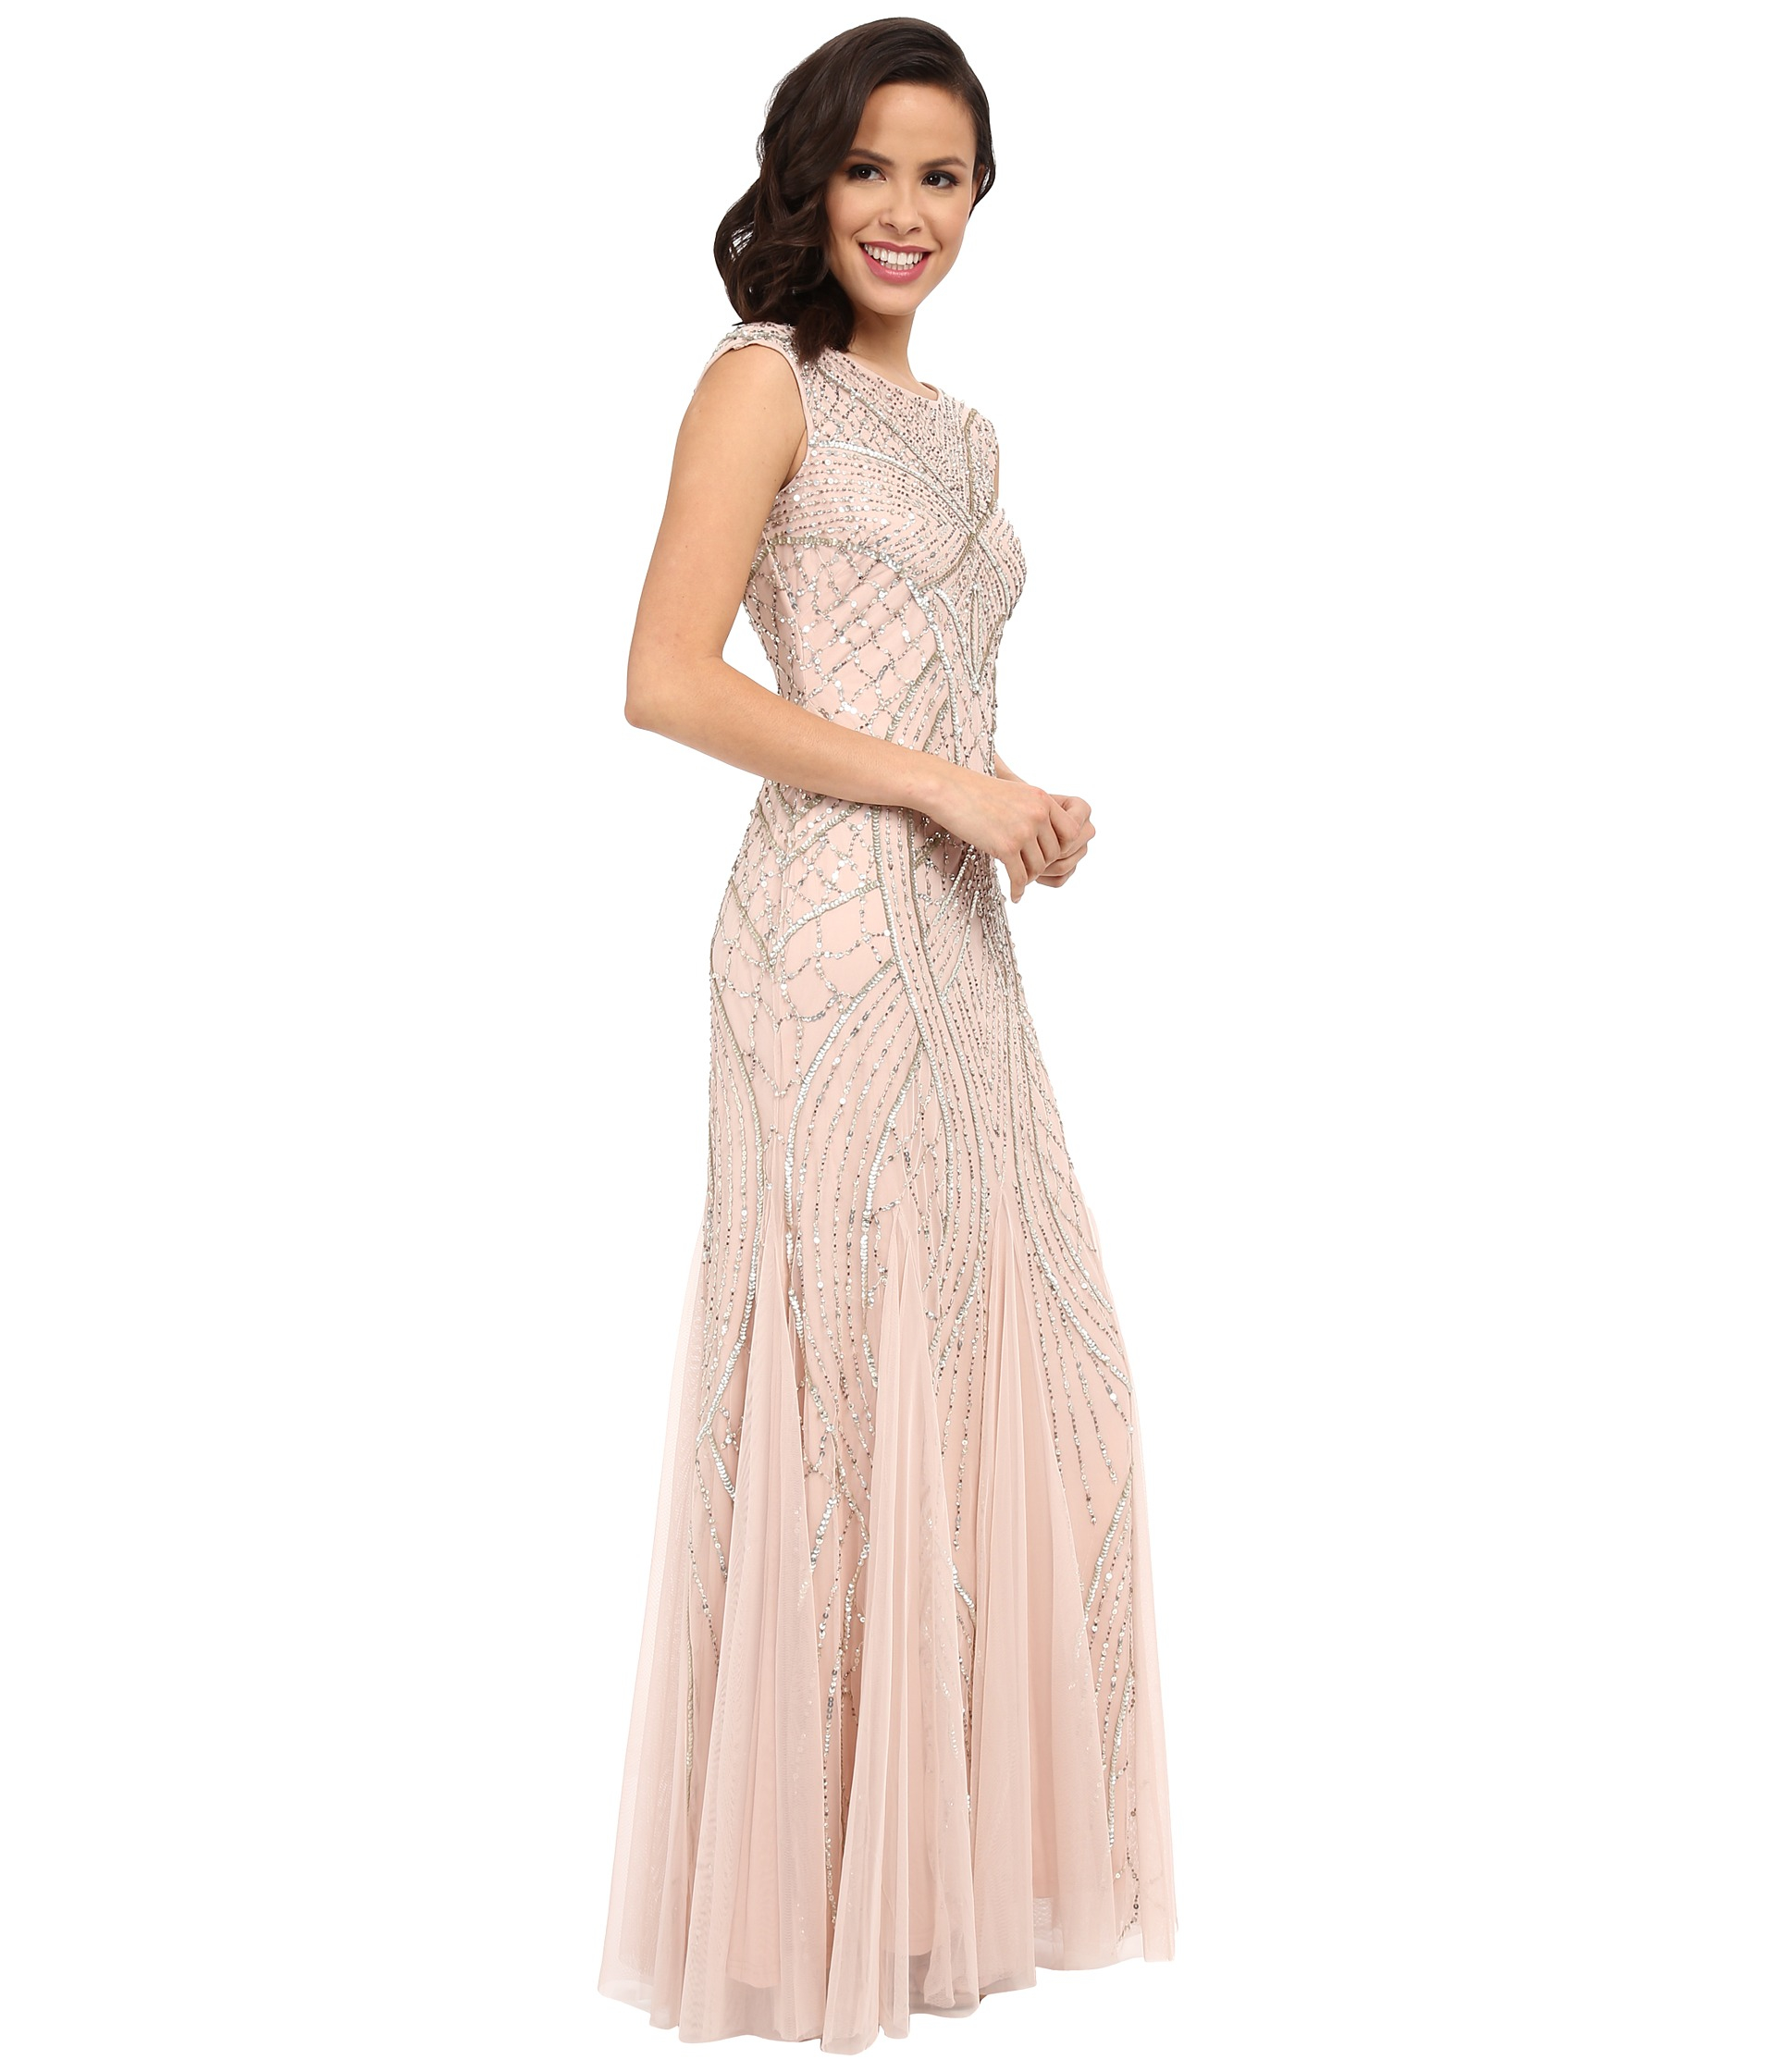 Lyst - Adrianna Papell Long Beaded Gown W/ Godets in Natural